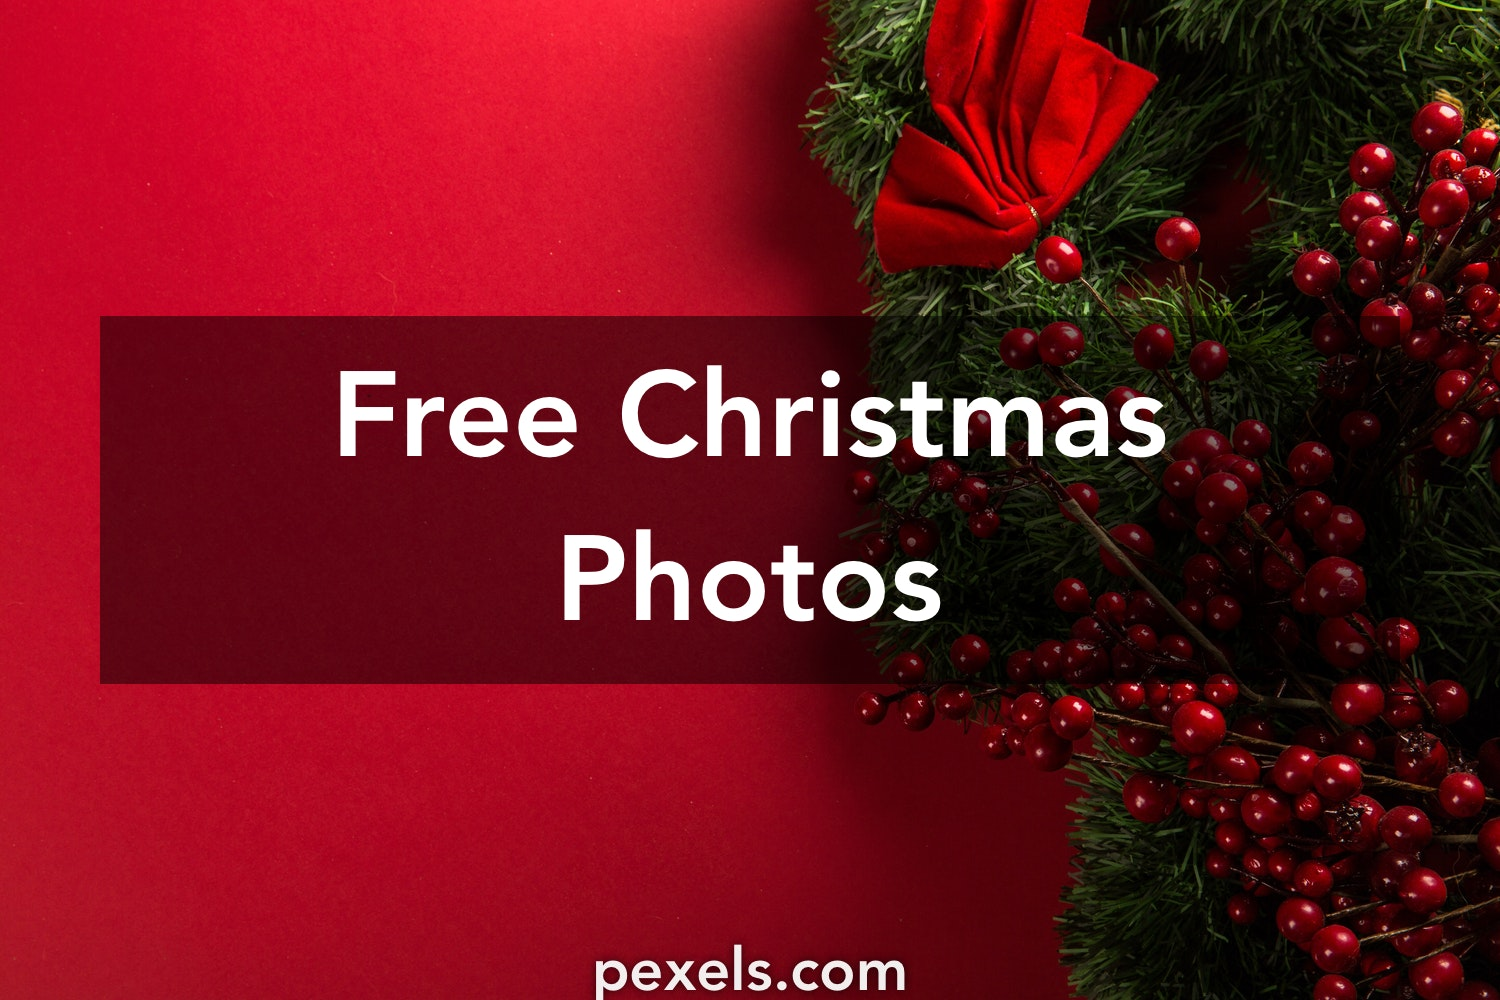 City Pictures Pexels Free Stock Photos: Christmas Images · Pexels · Free Stock Photos